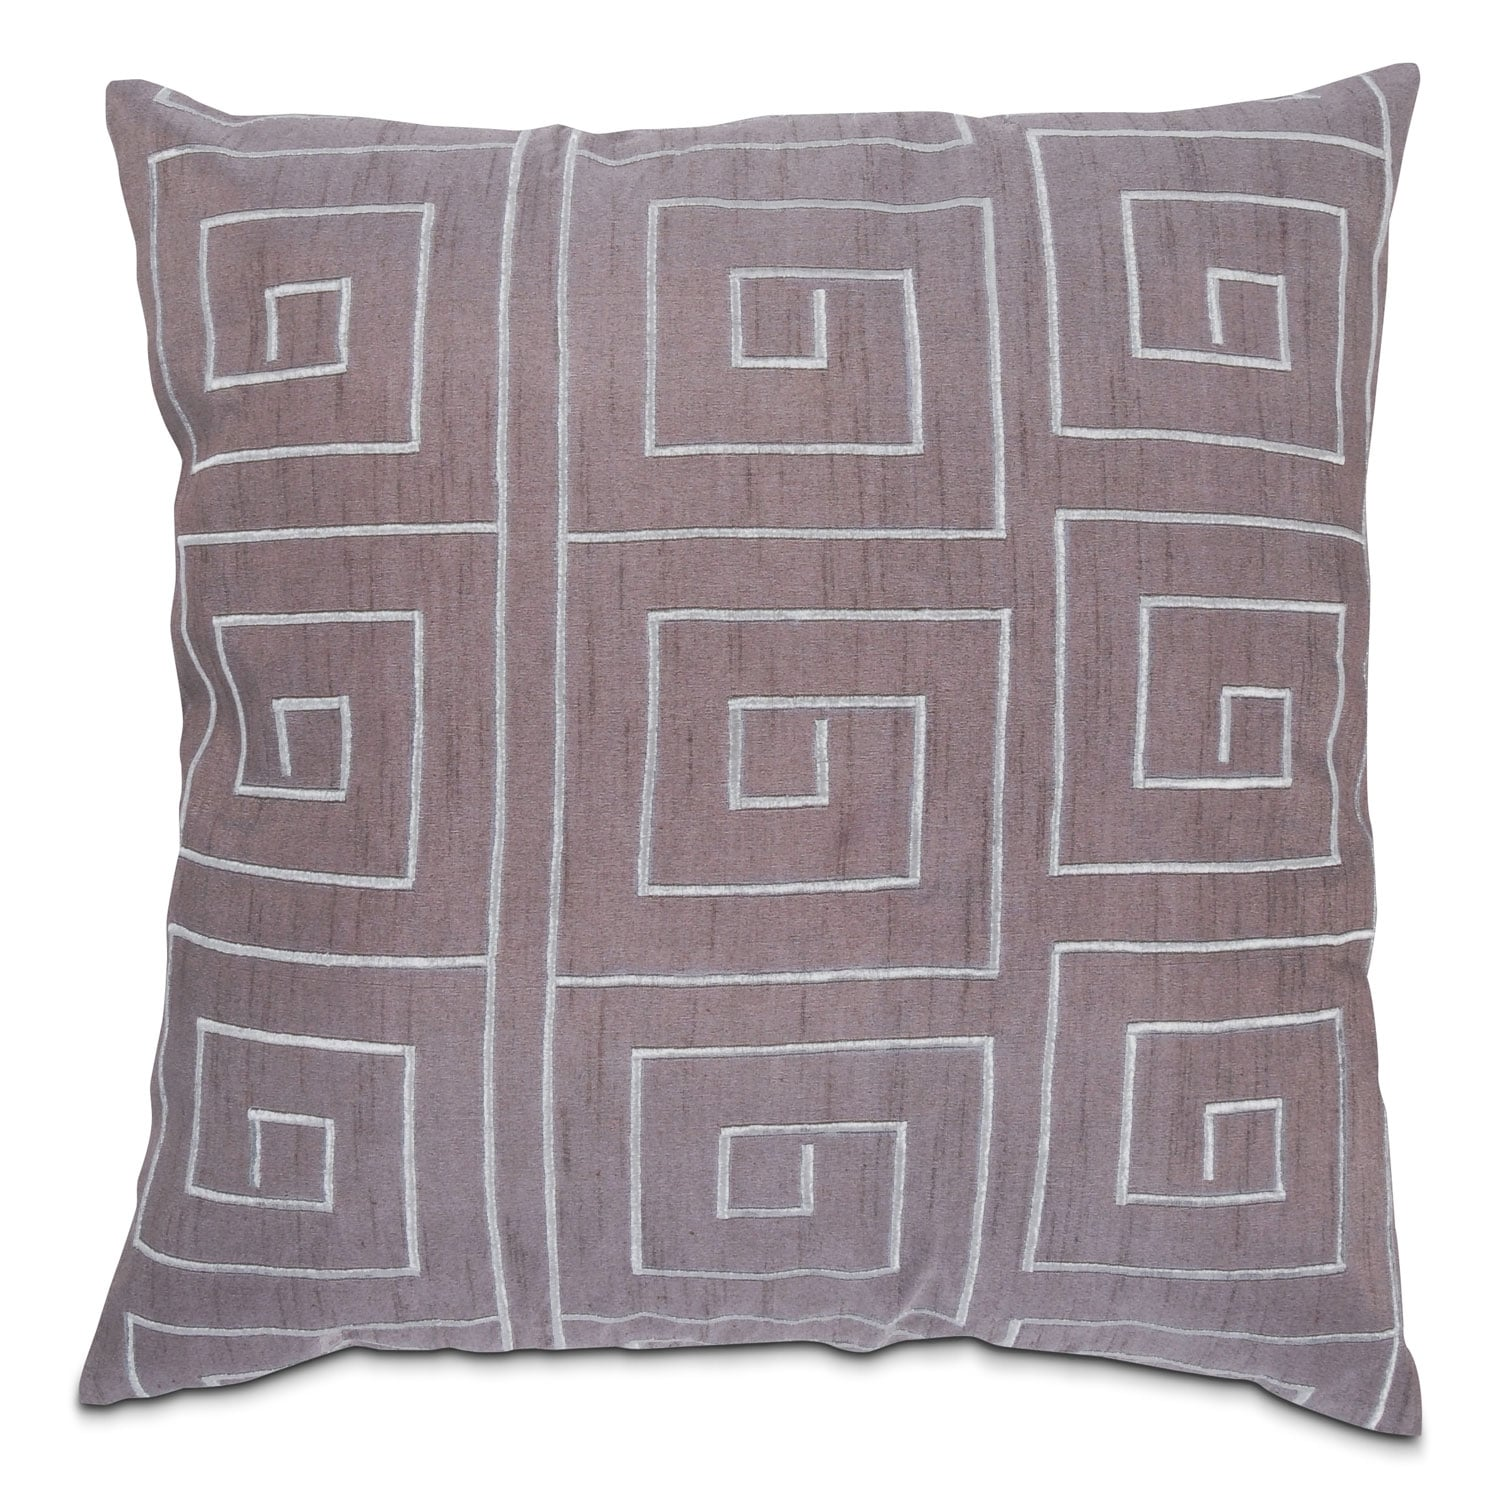 Key Decorative Pillow